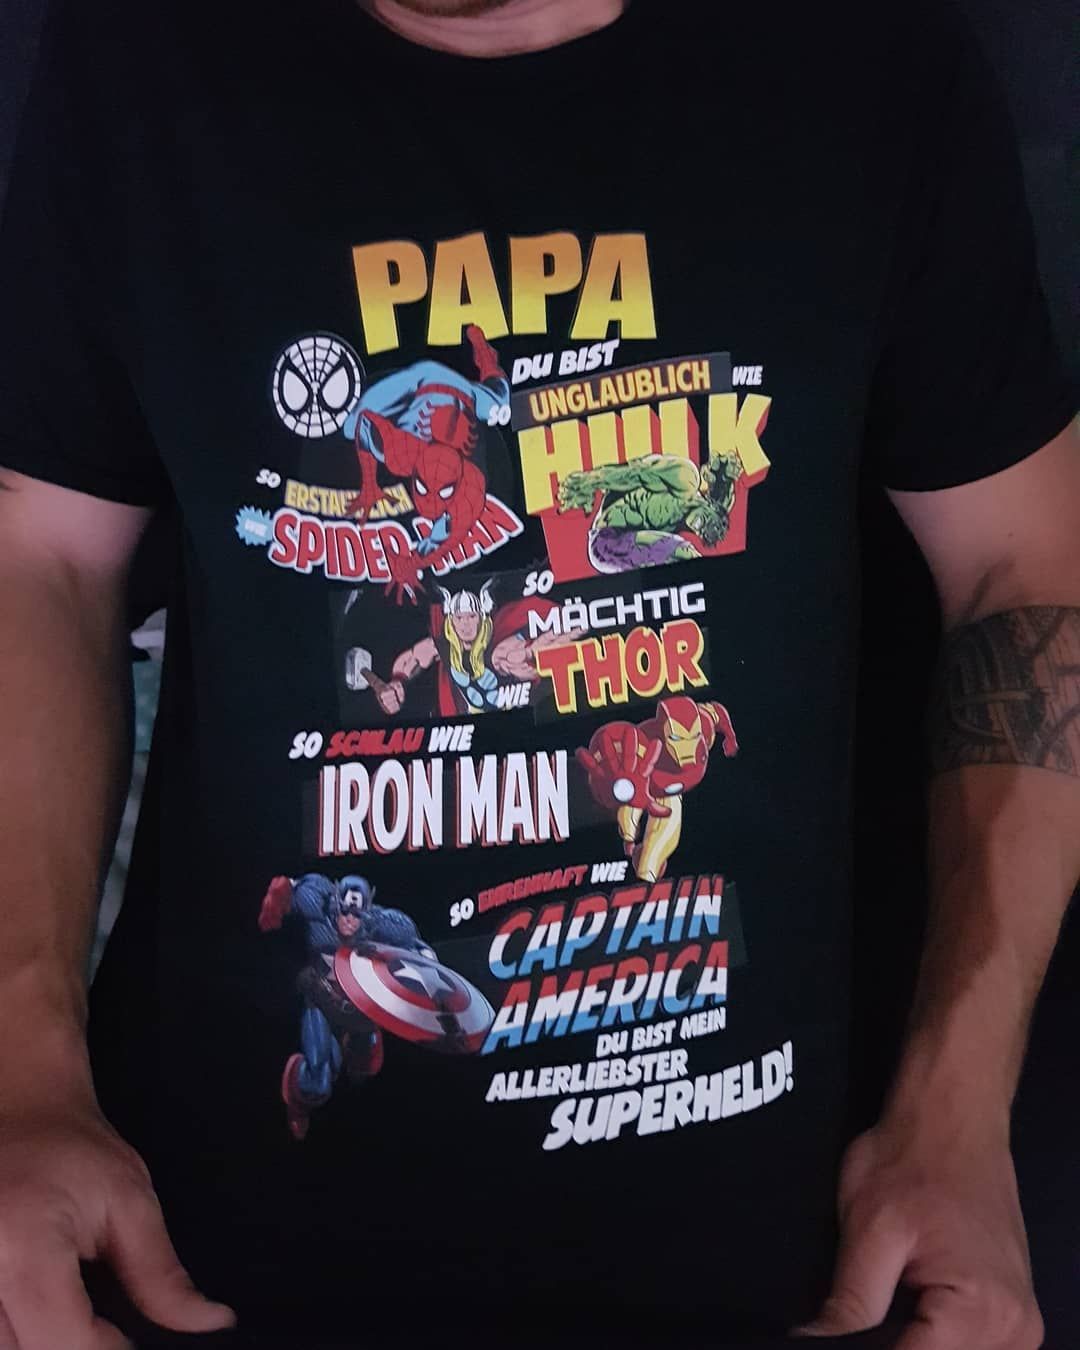 Papa Du Bist So Unglaublich Wie Hulk Spider-Man Thor Marvel Shirts photo review